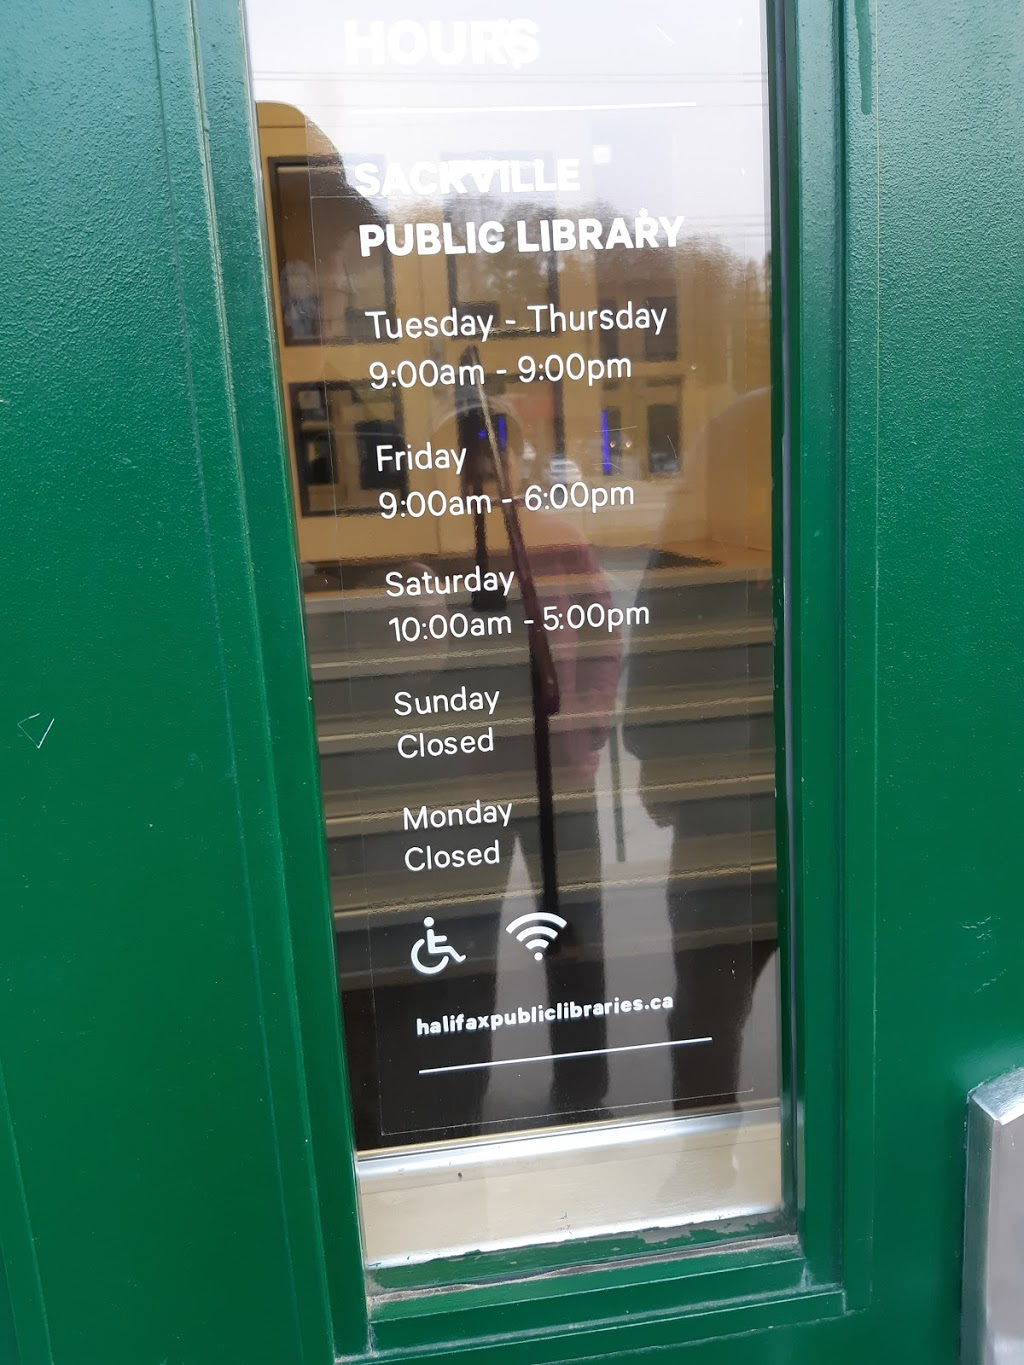 Halifax Public Libraries | library | 636 Sackville Dr, Lower Sackville, NS B4C 2S3, Canada | 9028658653 OR +1 902-865-8653